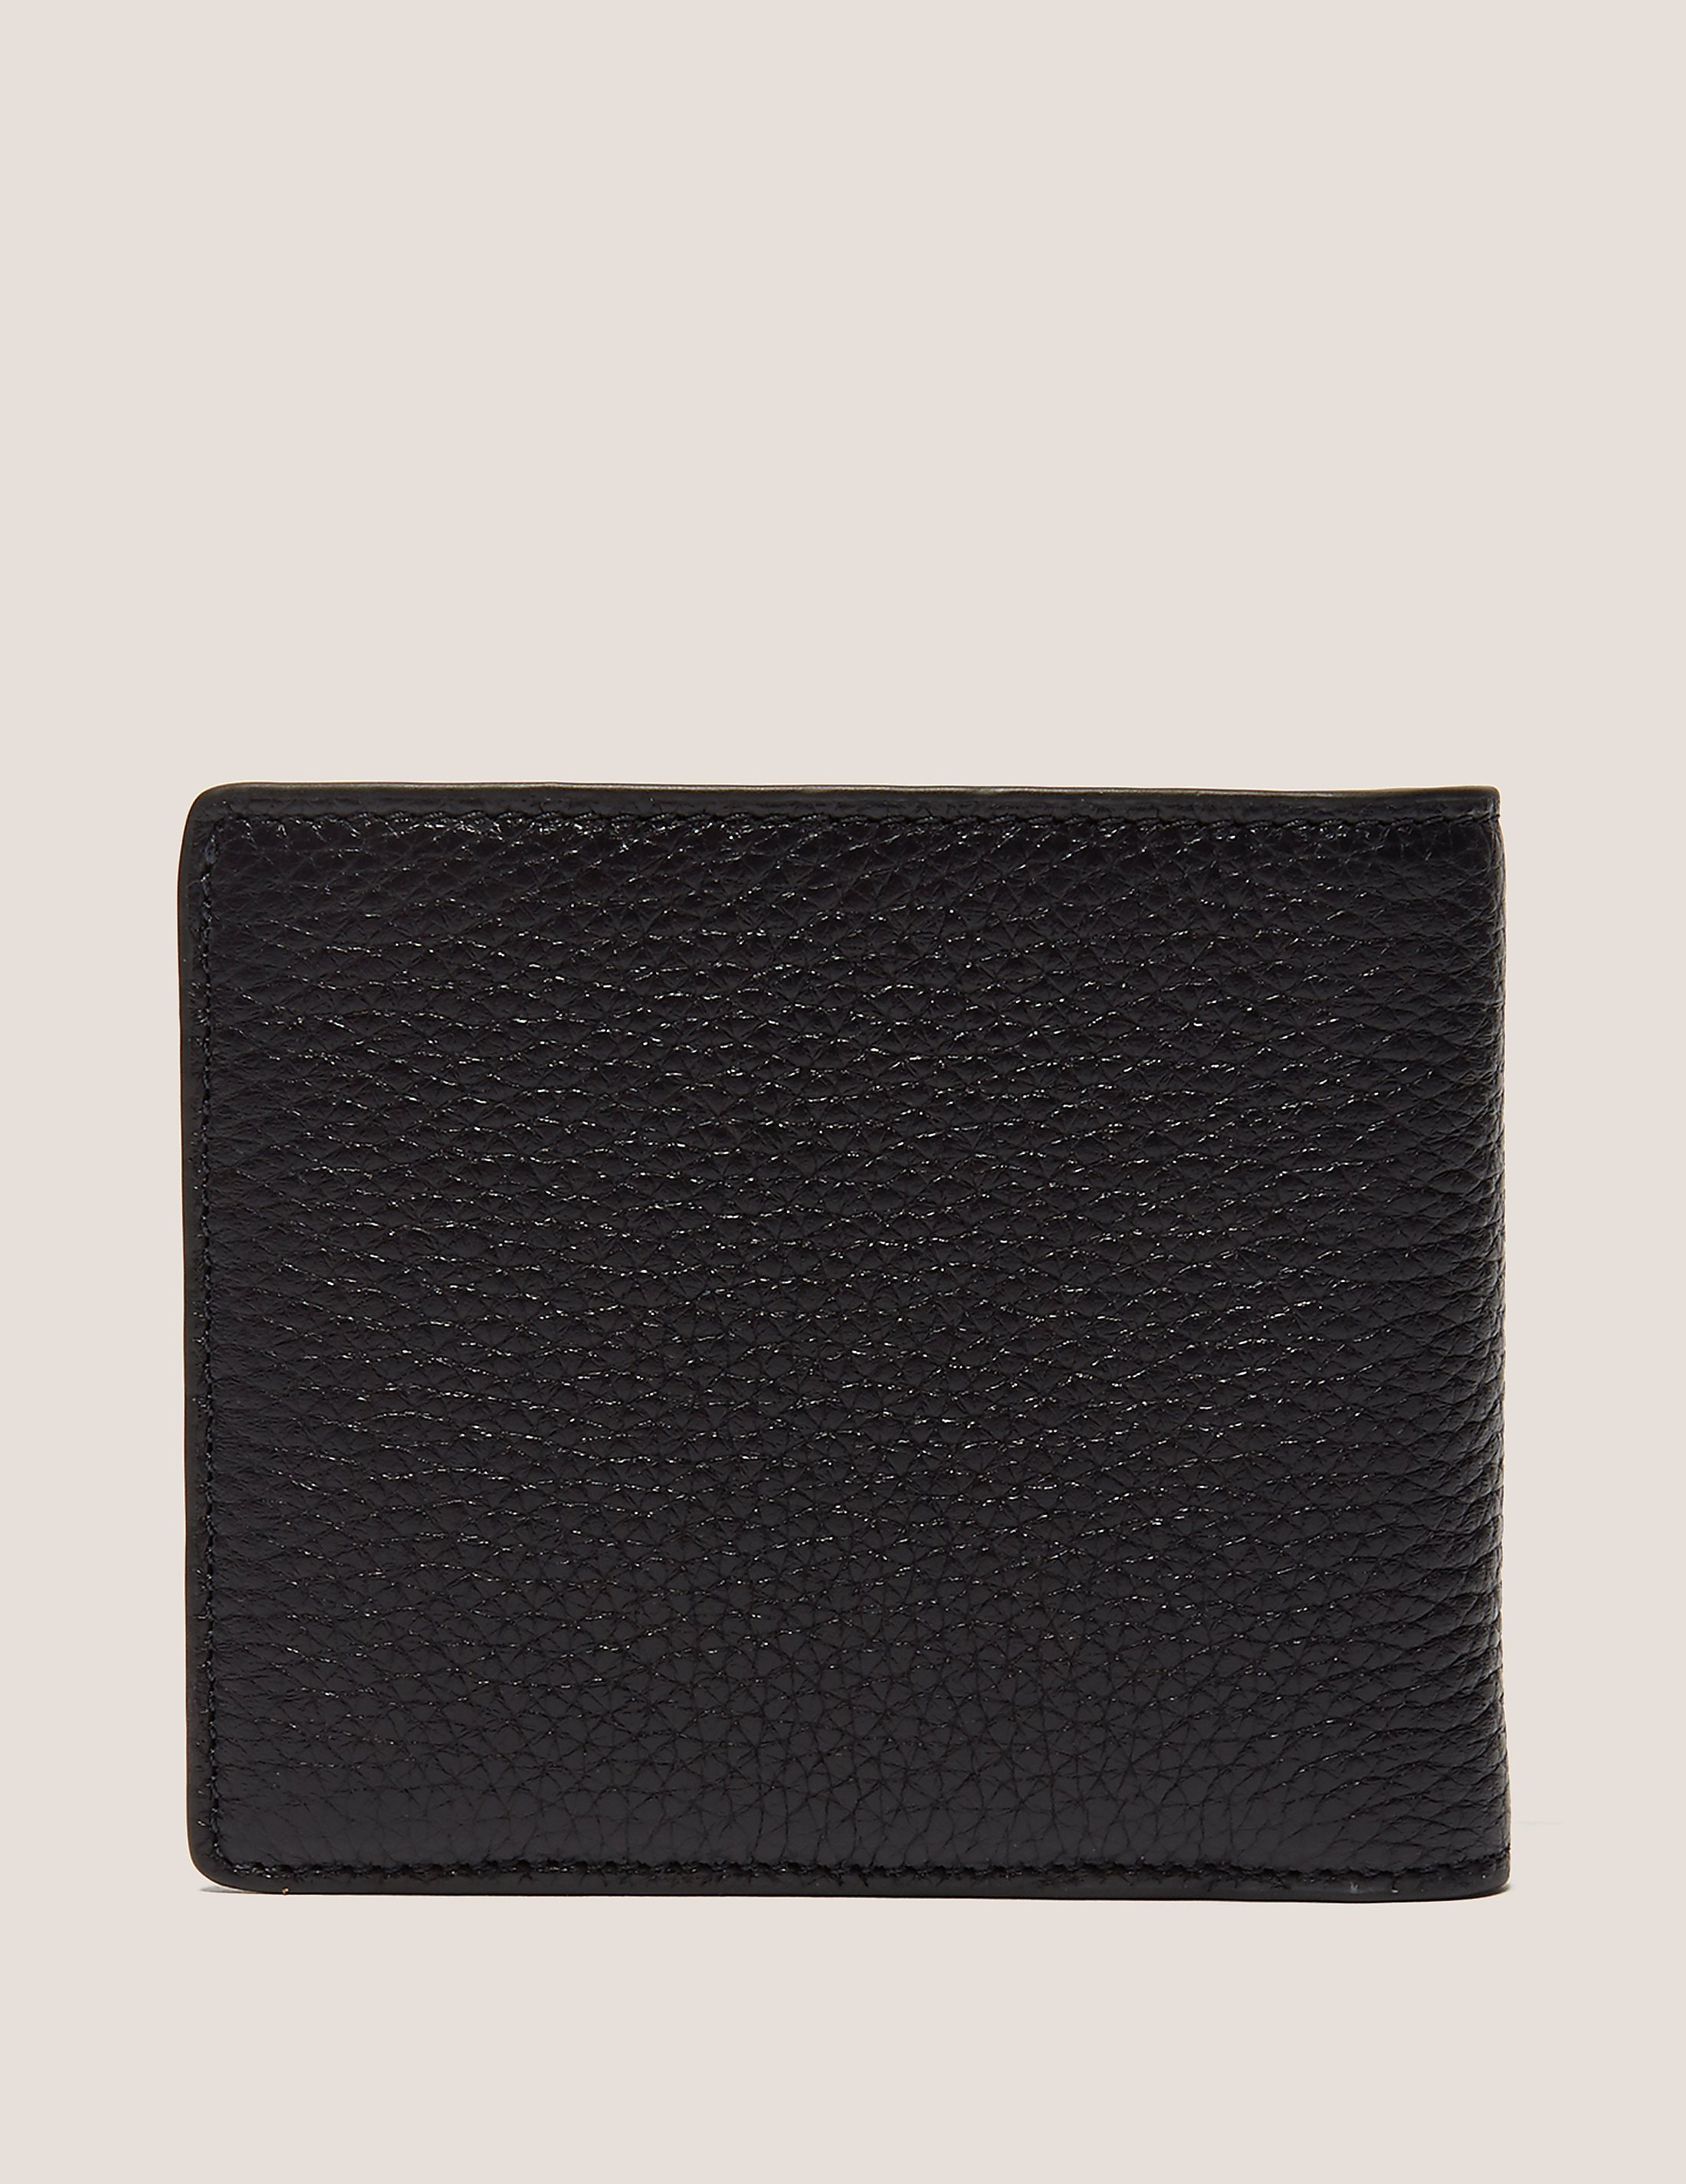 Paul Smith Sporty Leather Billfold Wallet